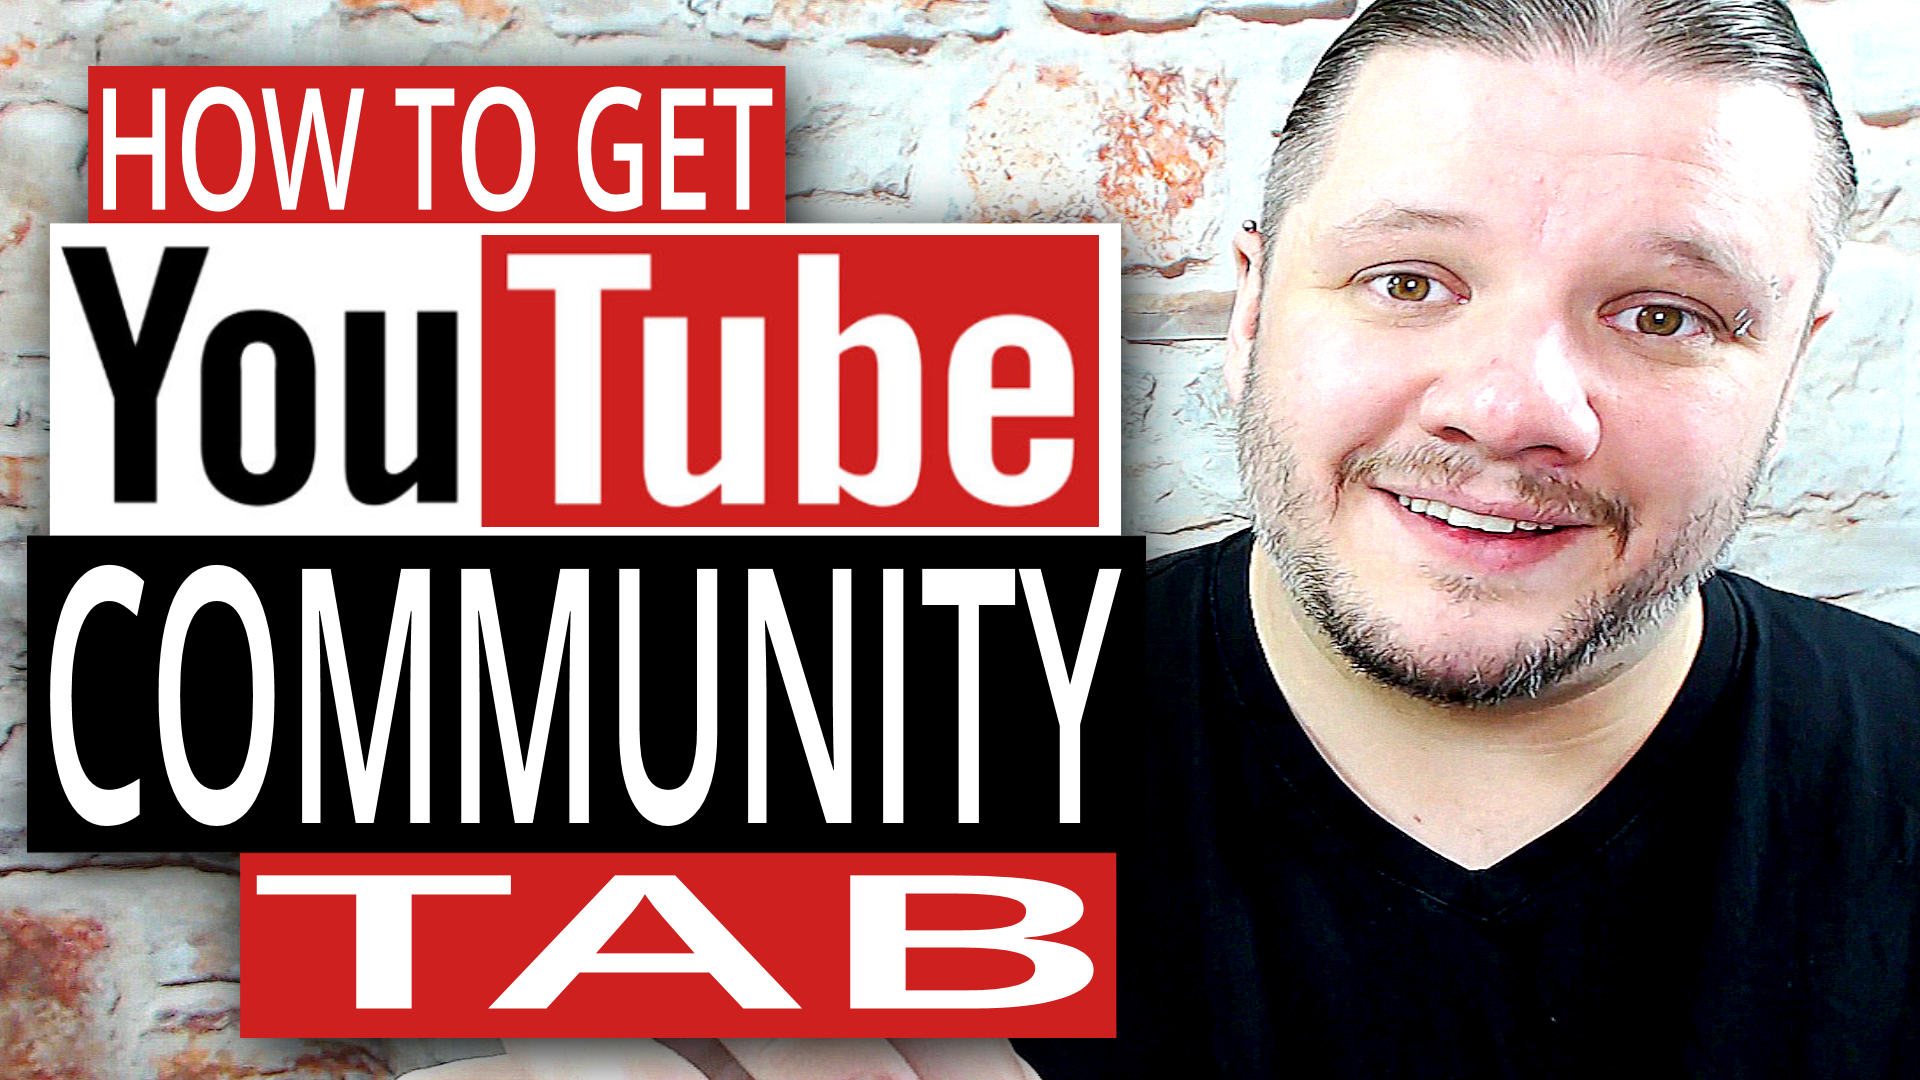 alan spicer,alanspicer,asyt,YouTube Community Tab 2018,How To Get The YouTube Community Tab 2018,How To Get The YouTube Community Tab,YouTube Community Tab,Community Tab,youtube community,how to get community tab on youtube,how to add community tab on youtube,how to get the community tab on your youtube channel,youtube community tab mobile,youtube community tab tutorial,youtube community tab beta,youtube community tab how to get,Where is the youtube community tab